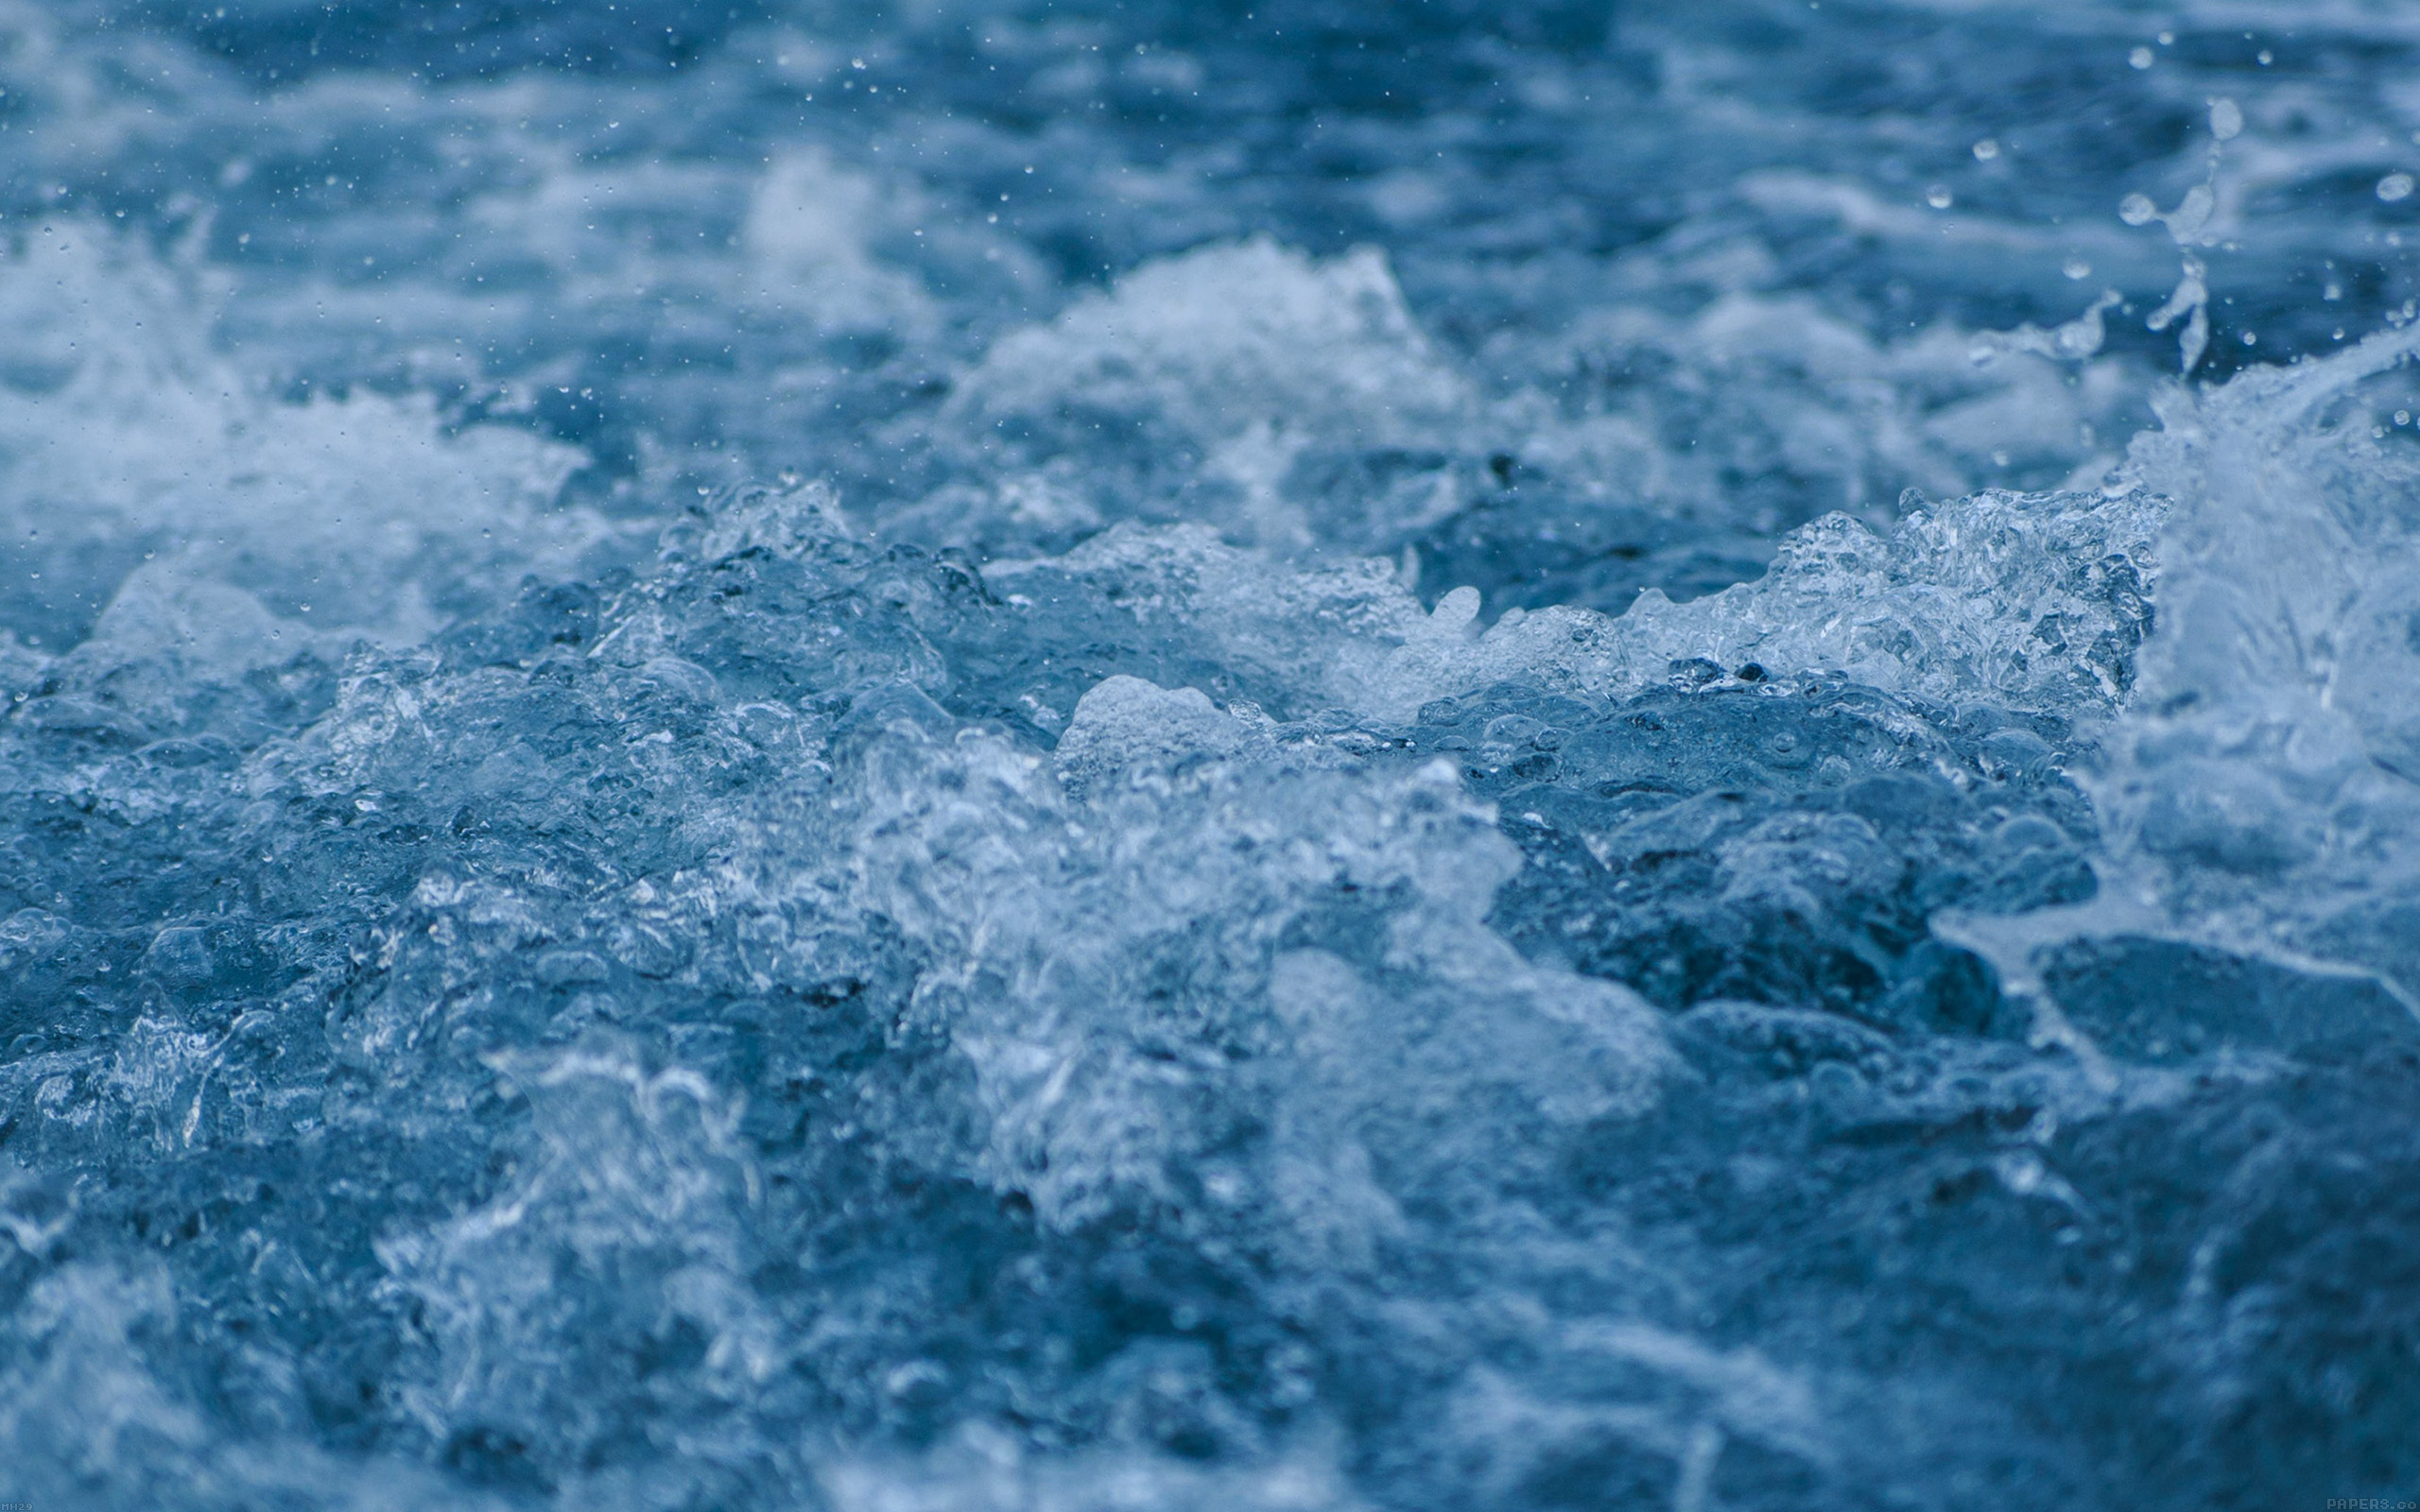 mh29-wave-sea-ocean-nature-angry - Papers.co